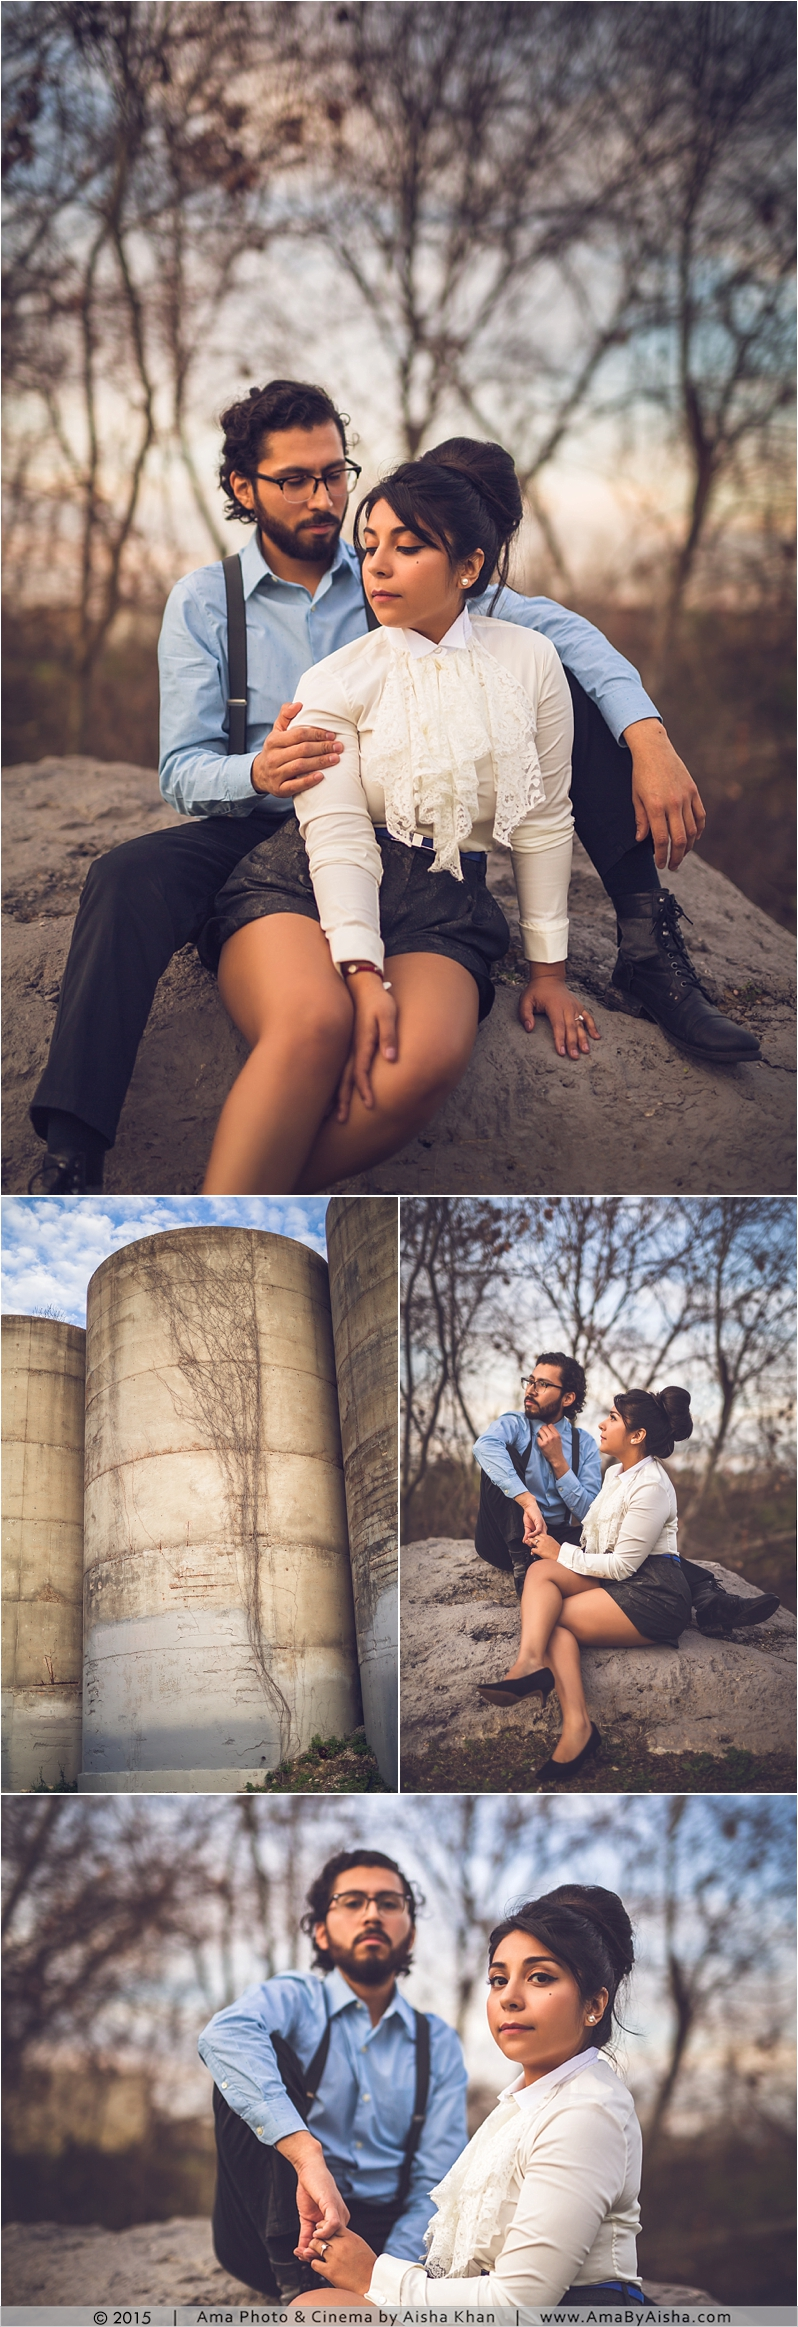 Houston Engagement Session from www.AmaByAisha.com